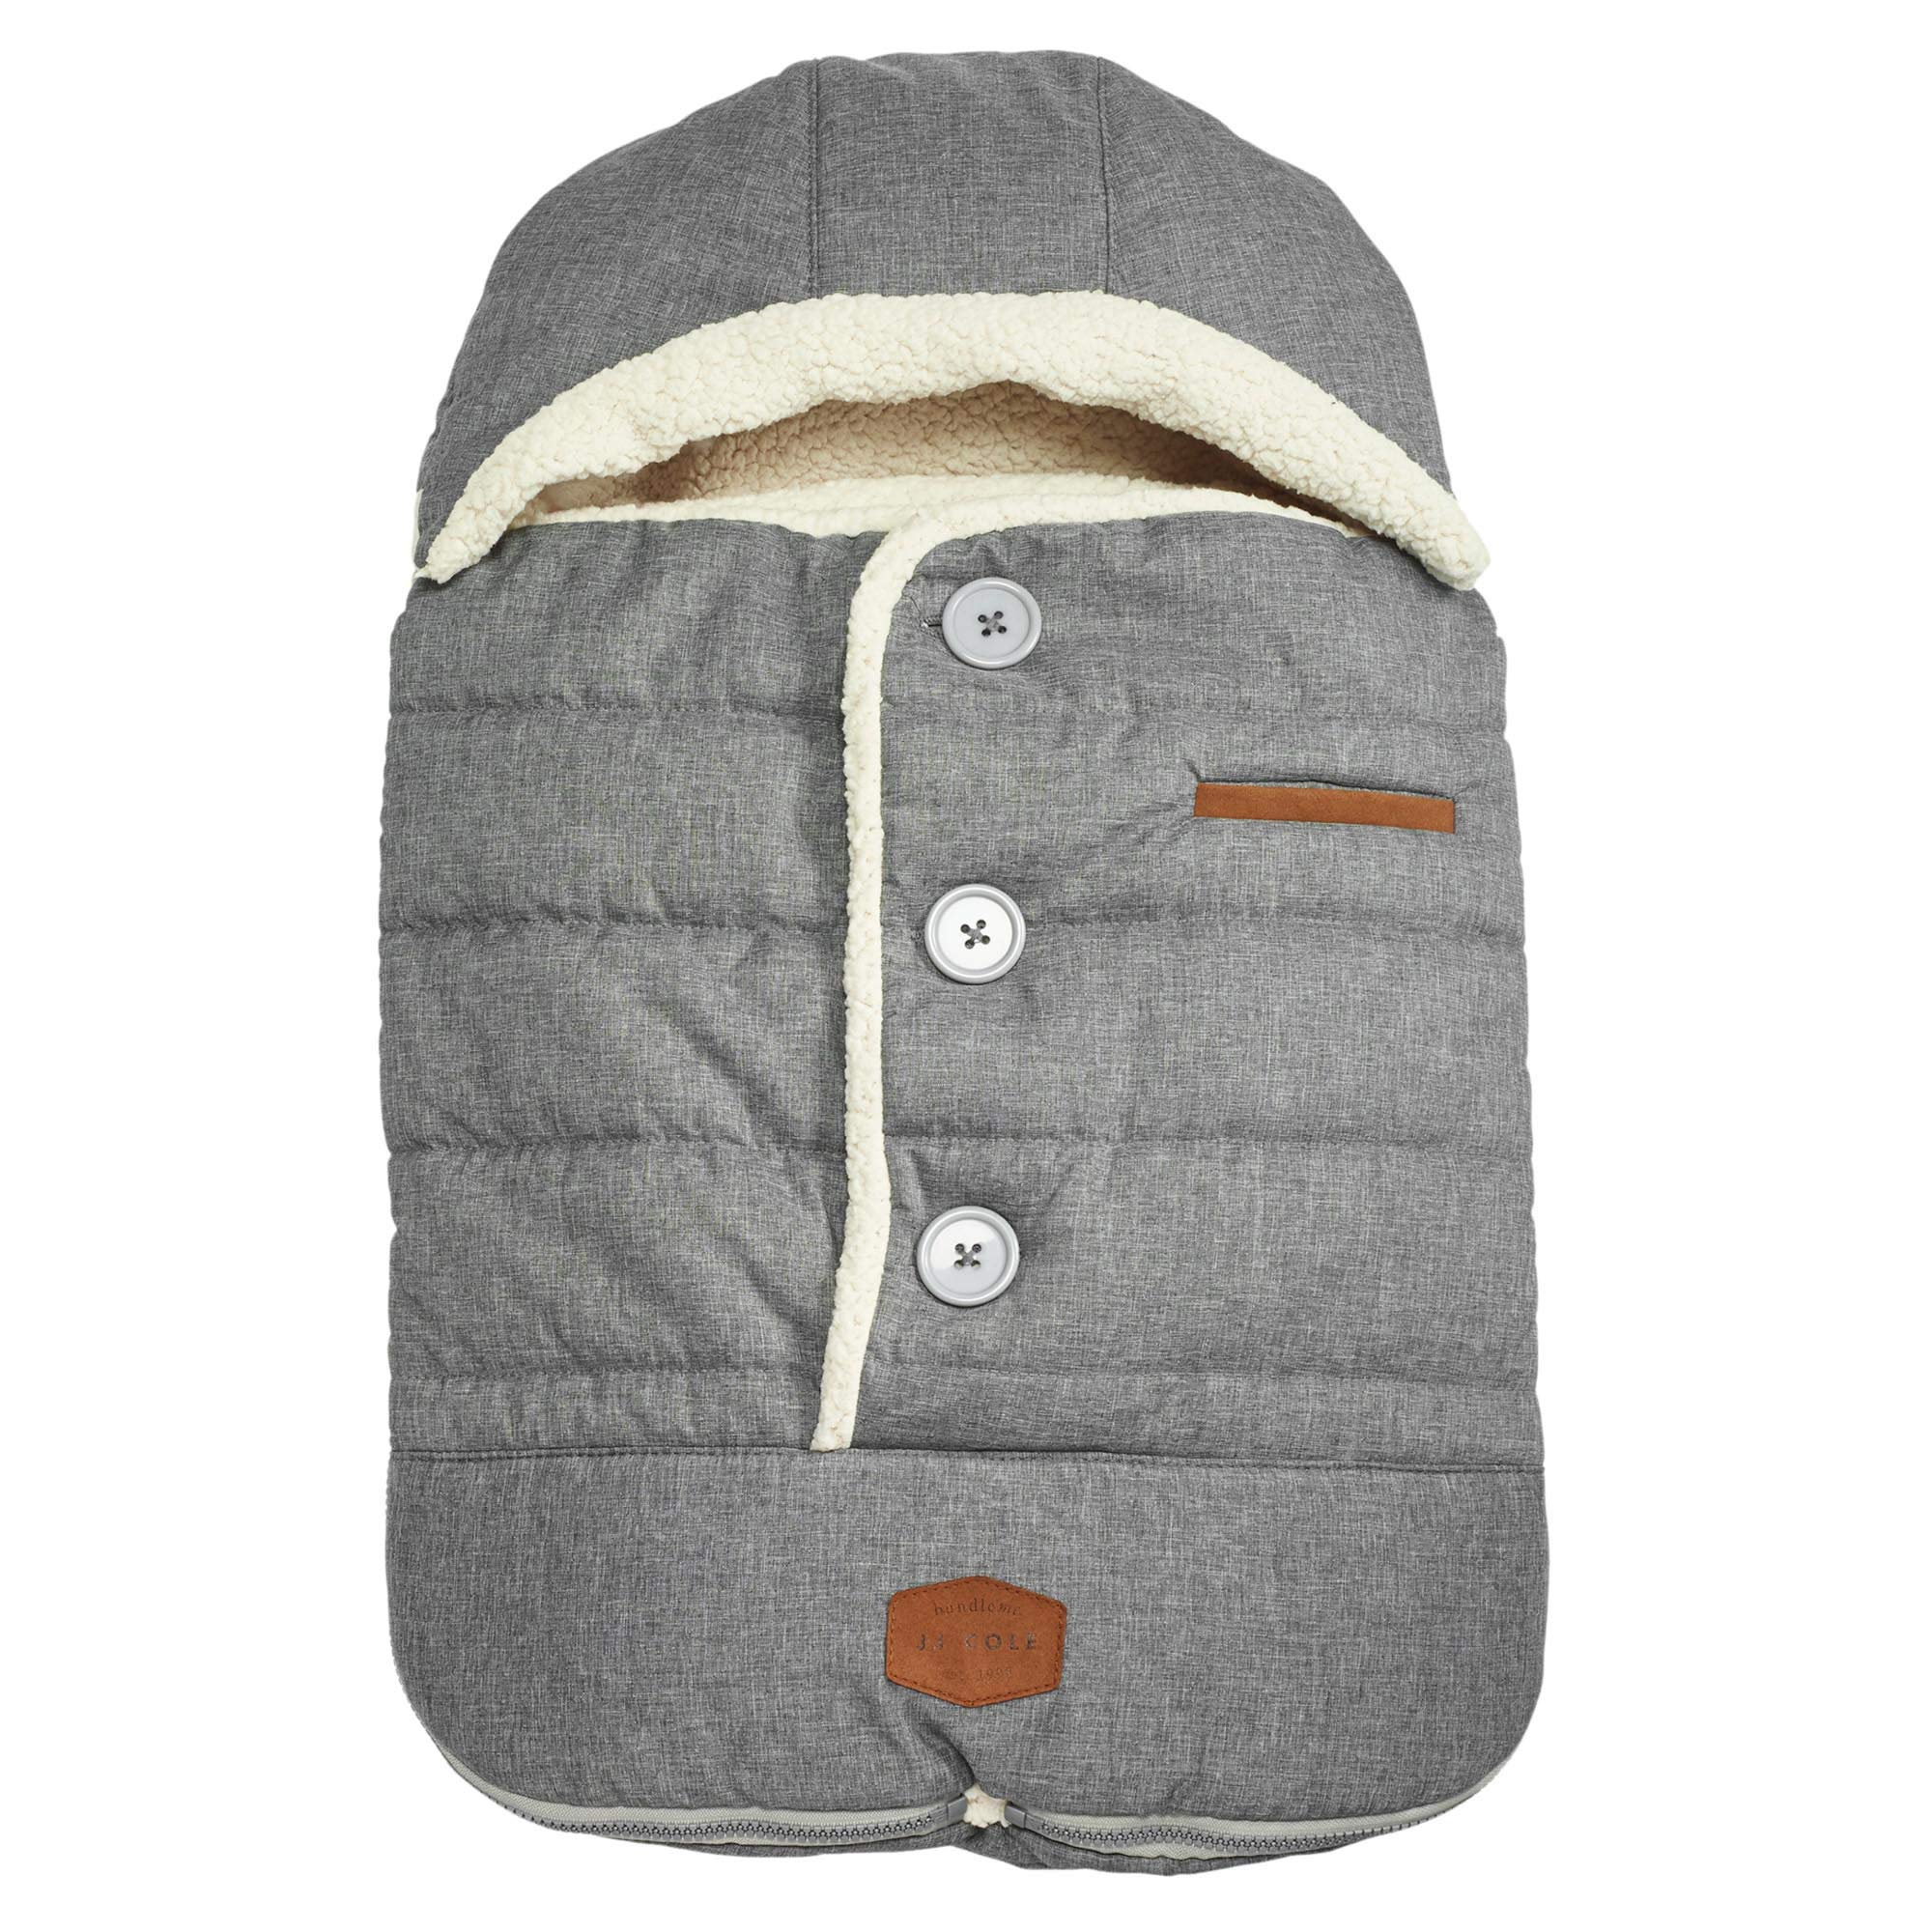 JJ Cole - Urban Bundleme, Canopy Style Bunting Bag to Protect Baby from Cold & Winter Weather in Car Seats & Strollers, Graphite, Infant by JJ Cole (Image #1)